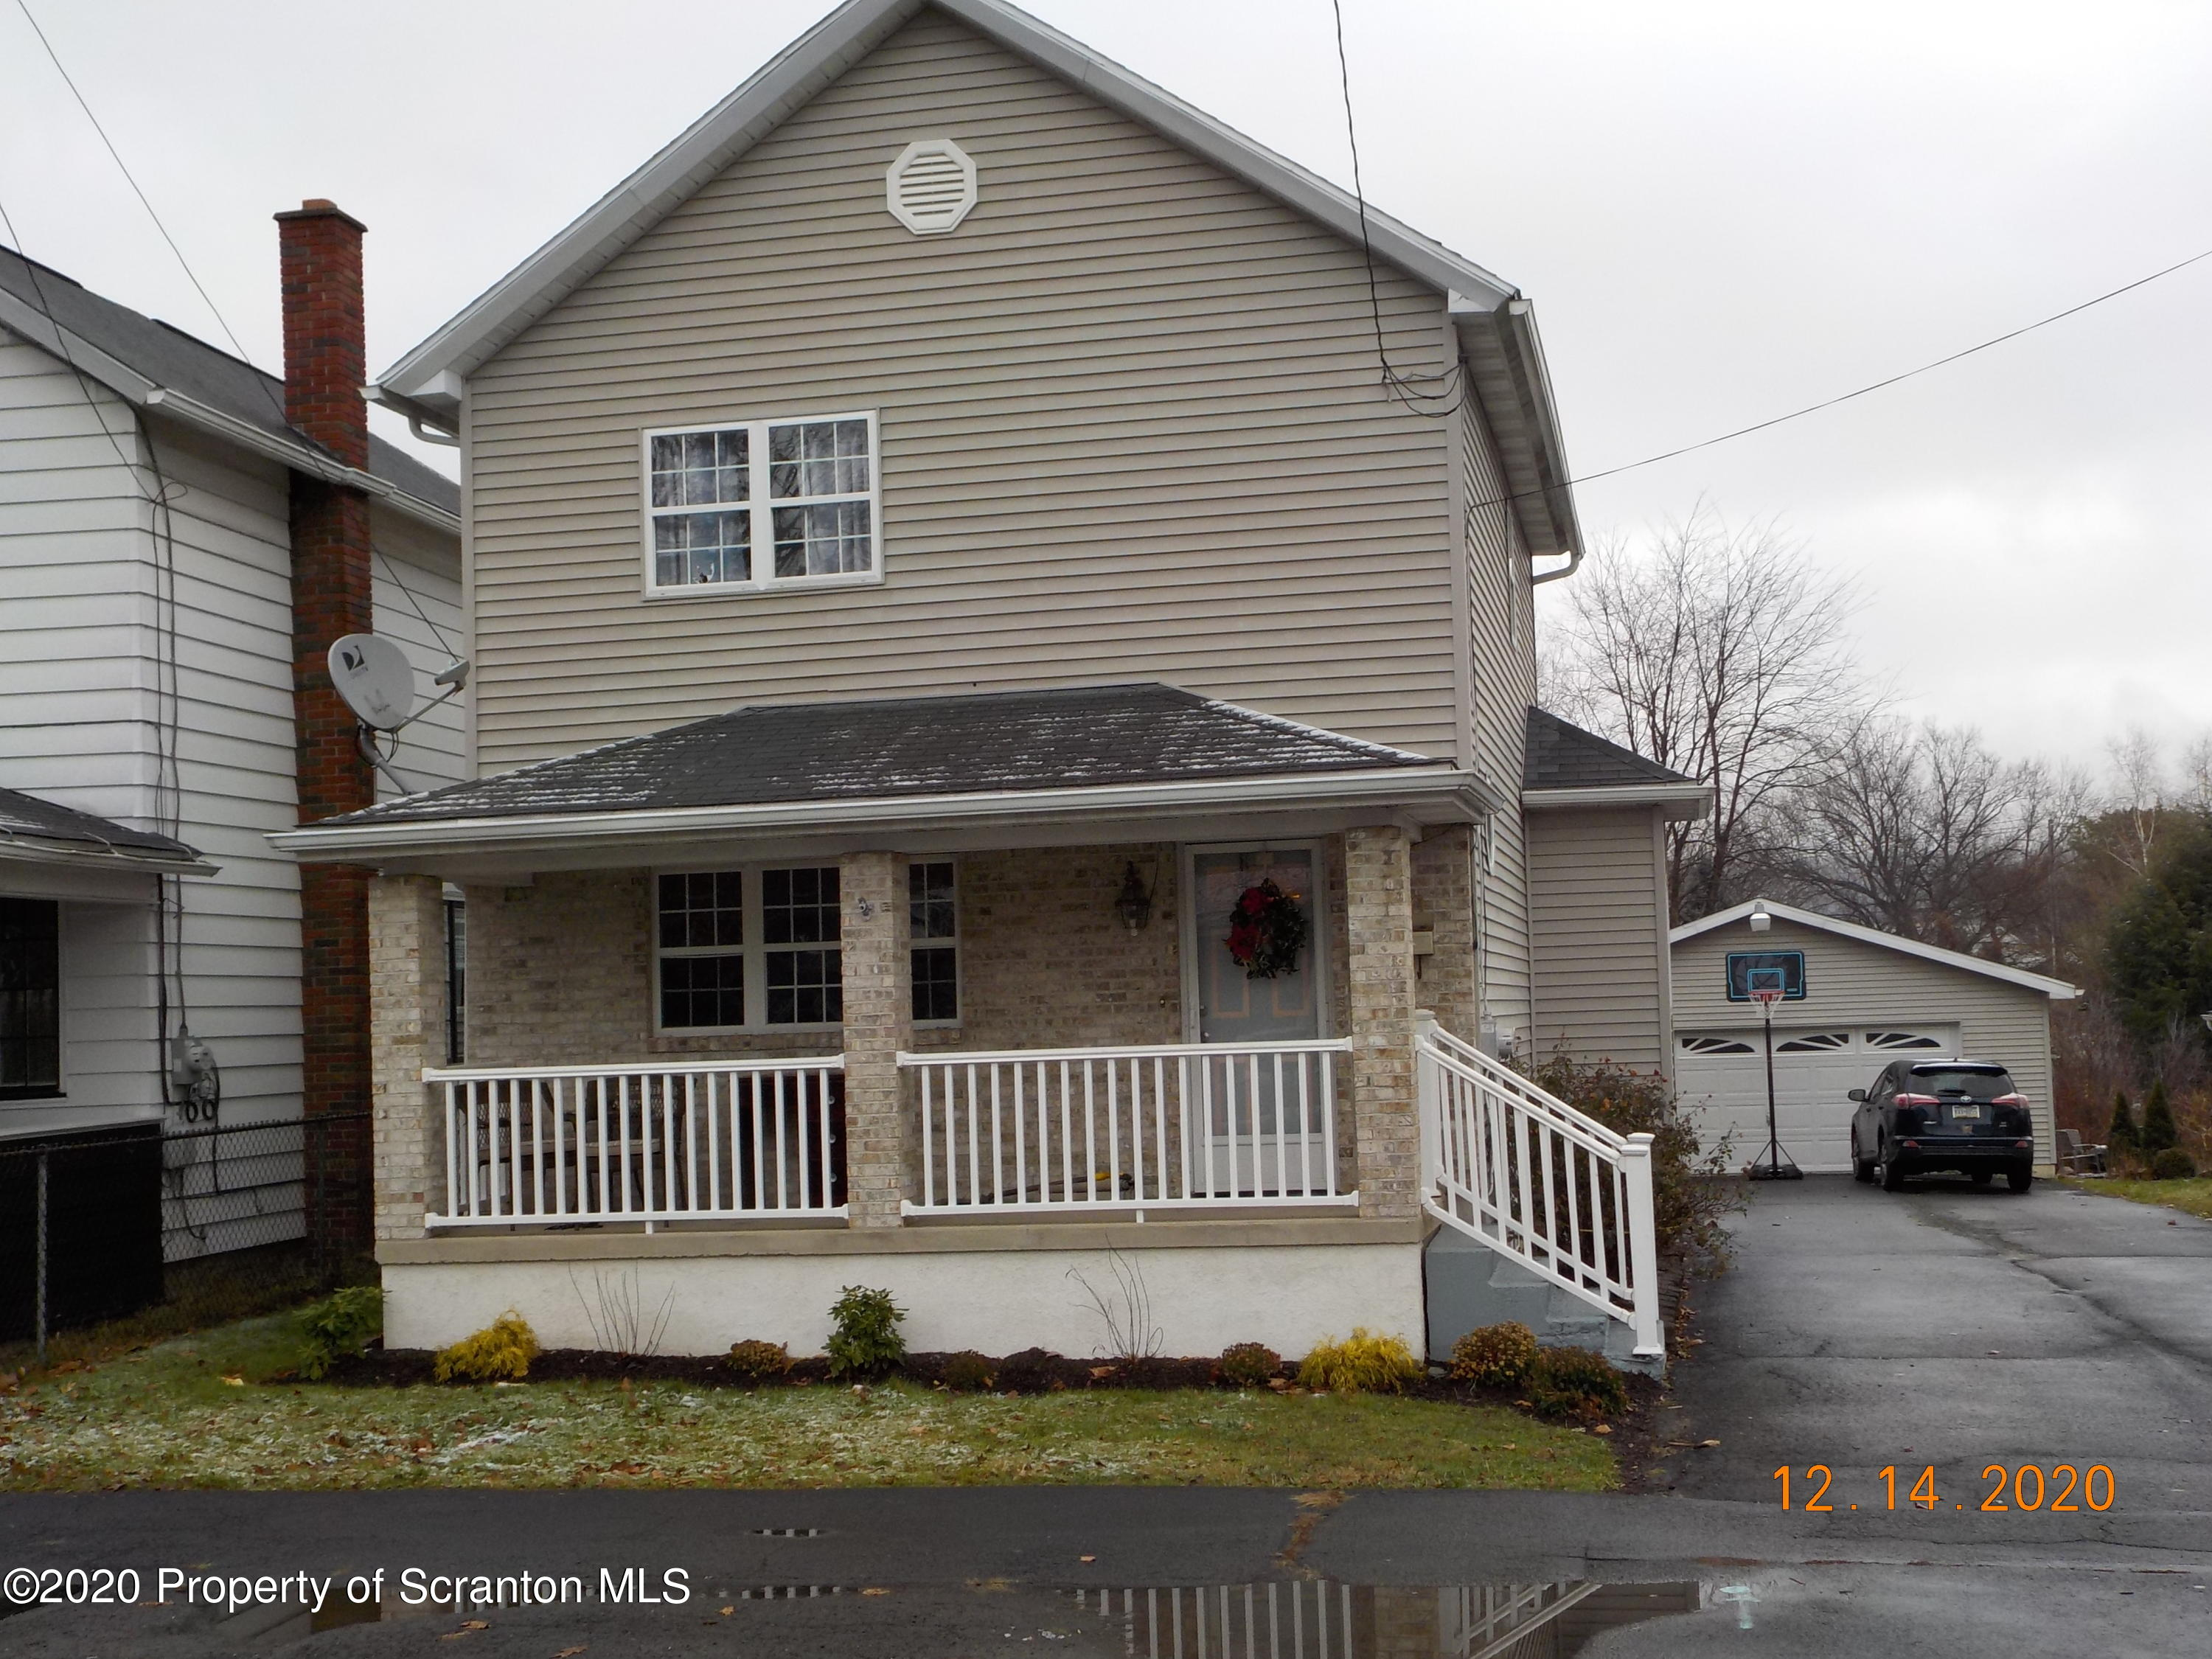 540 Lincoln Ave, Jermyn, Pennsylvania 18433, 3 Bedrooms Bedrooms, 7 Rooms Rooms,2 BathroomsBathrooms,Single Family,For Sale,Lincoln,20-5297